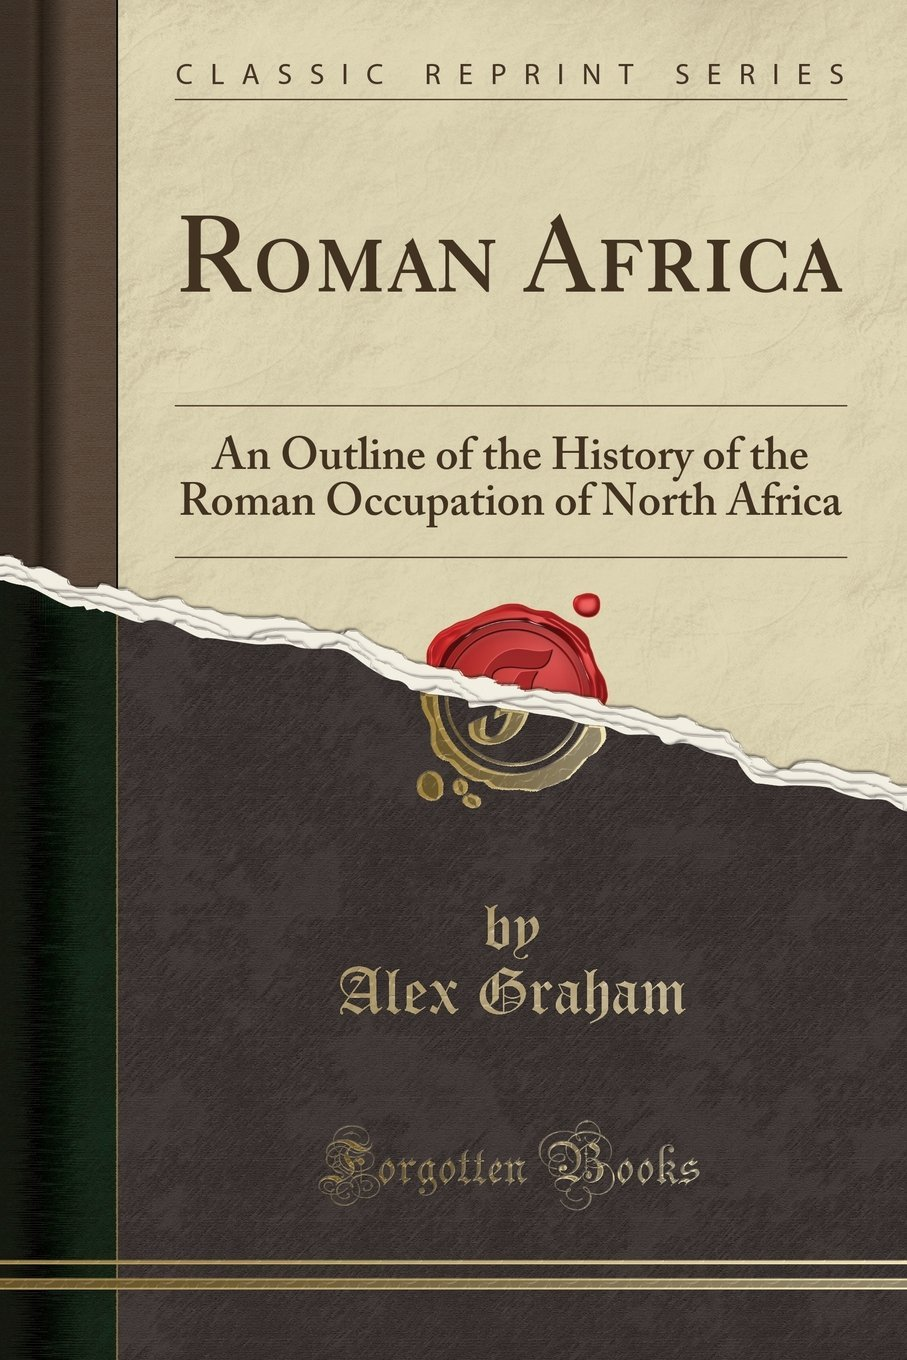 Roman Africa: An Outline of the History of the Roman Occupation of North Africa (Classic Reprint) pdf